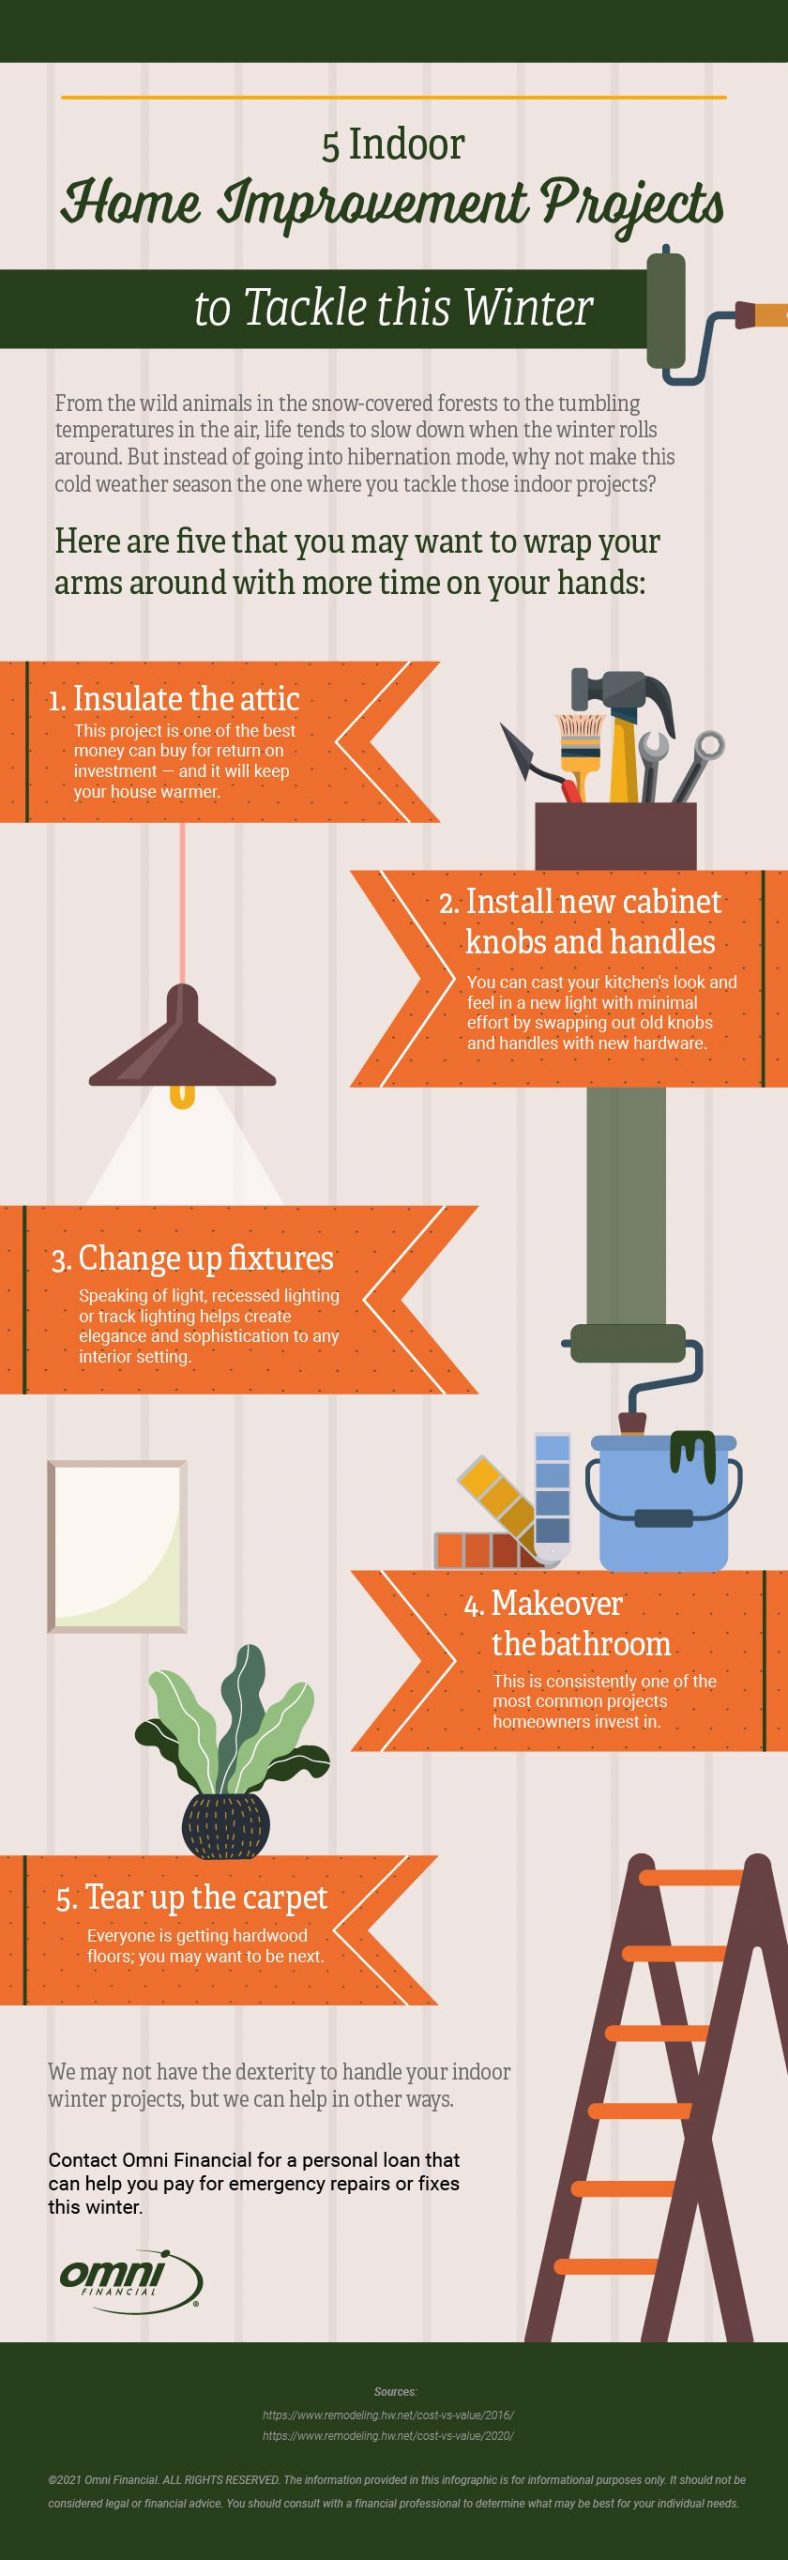 Infographic showing 5 home improvement projects